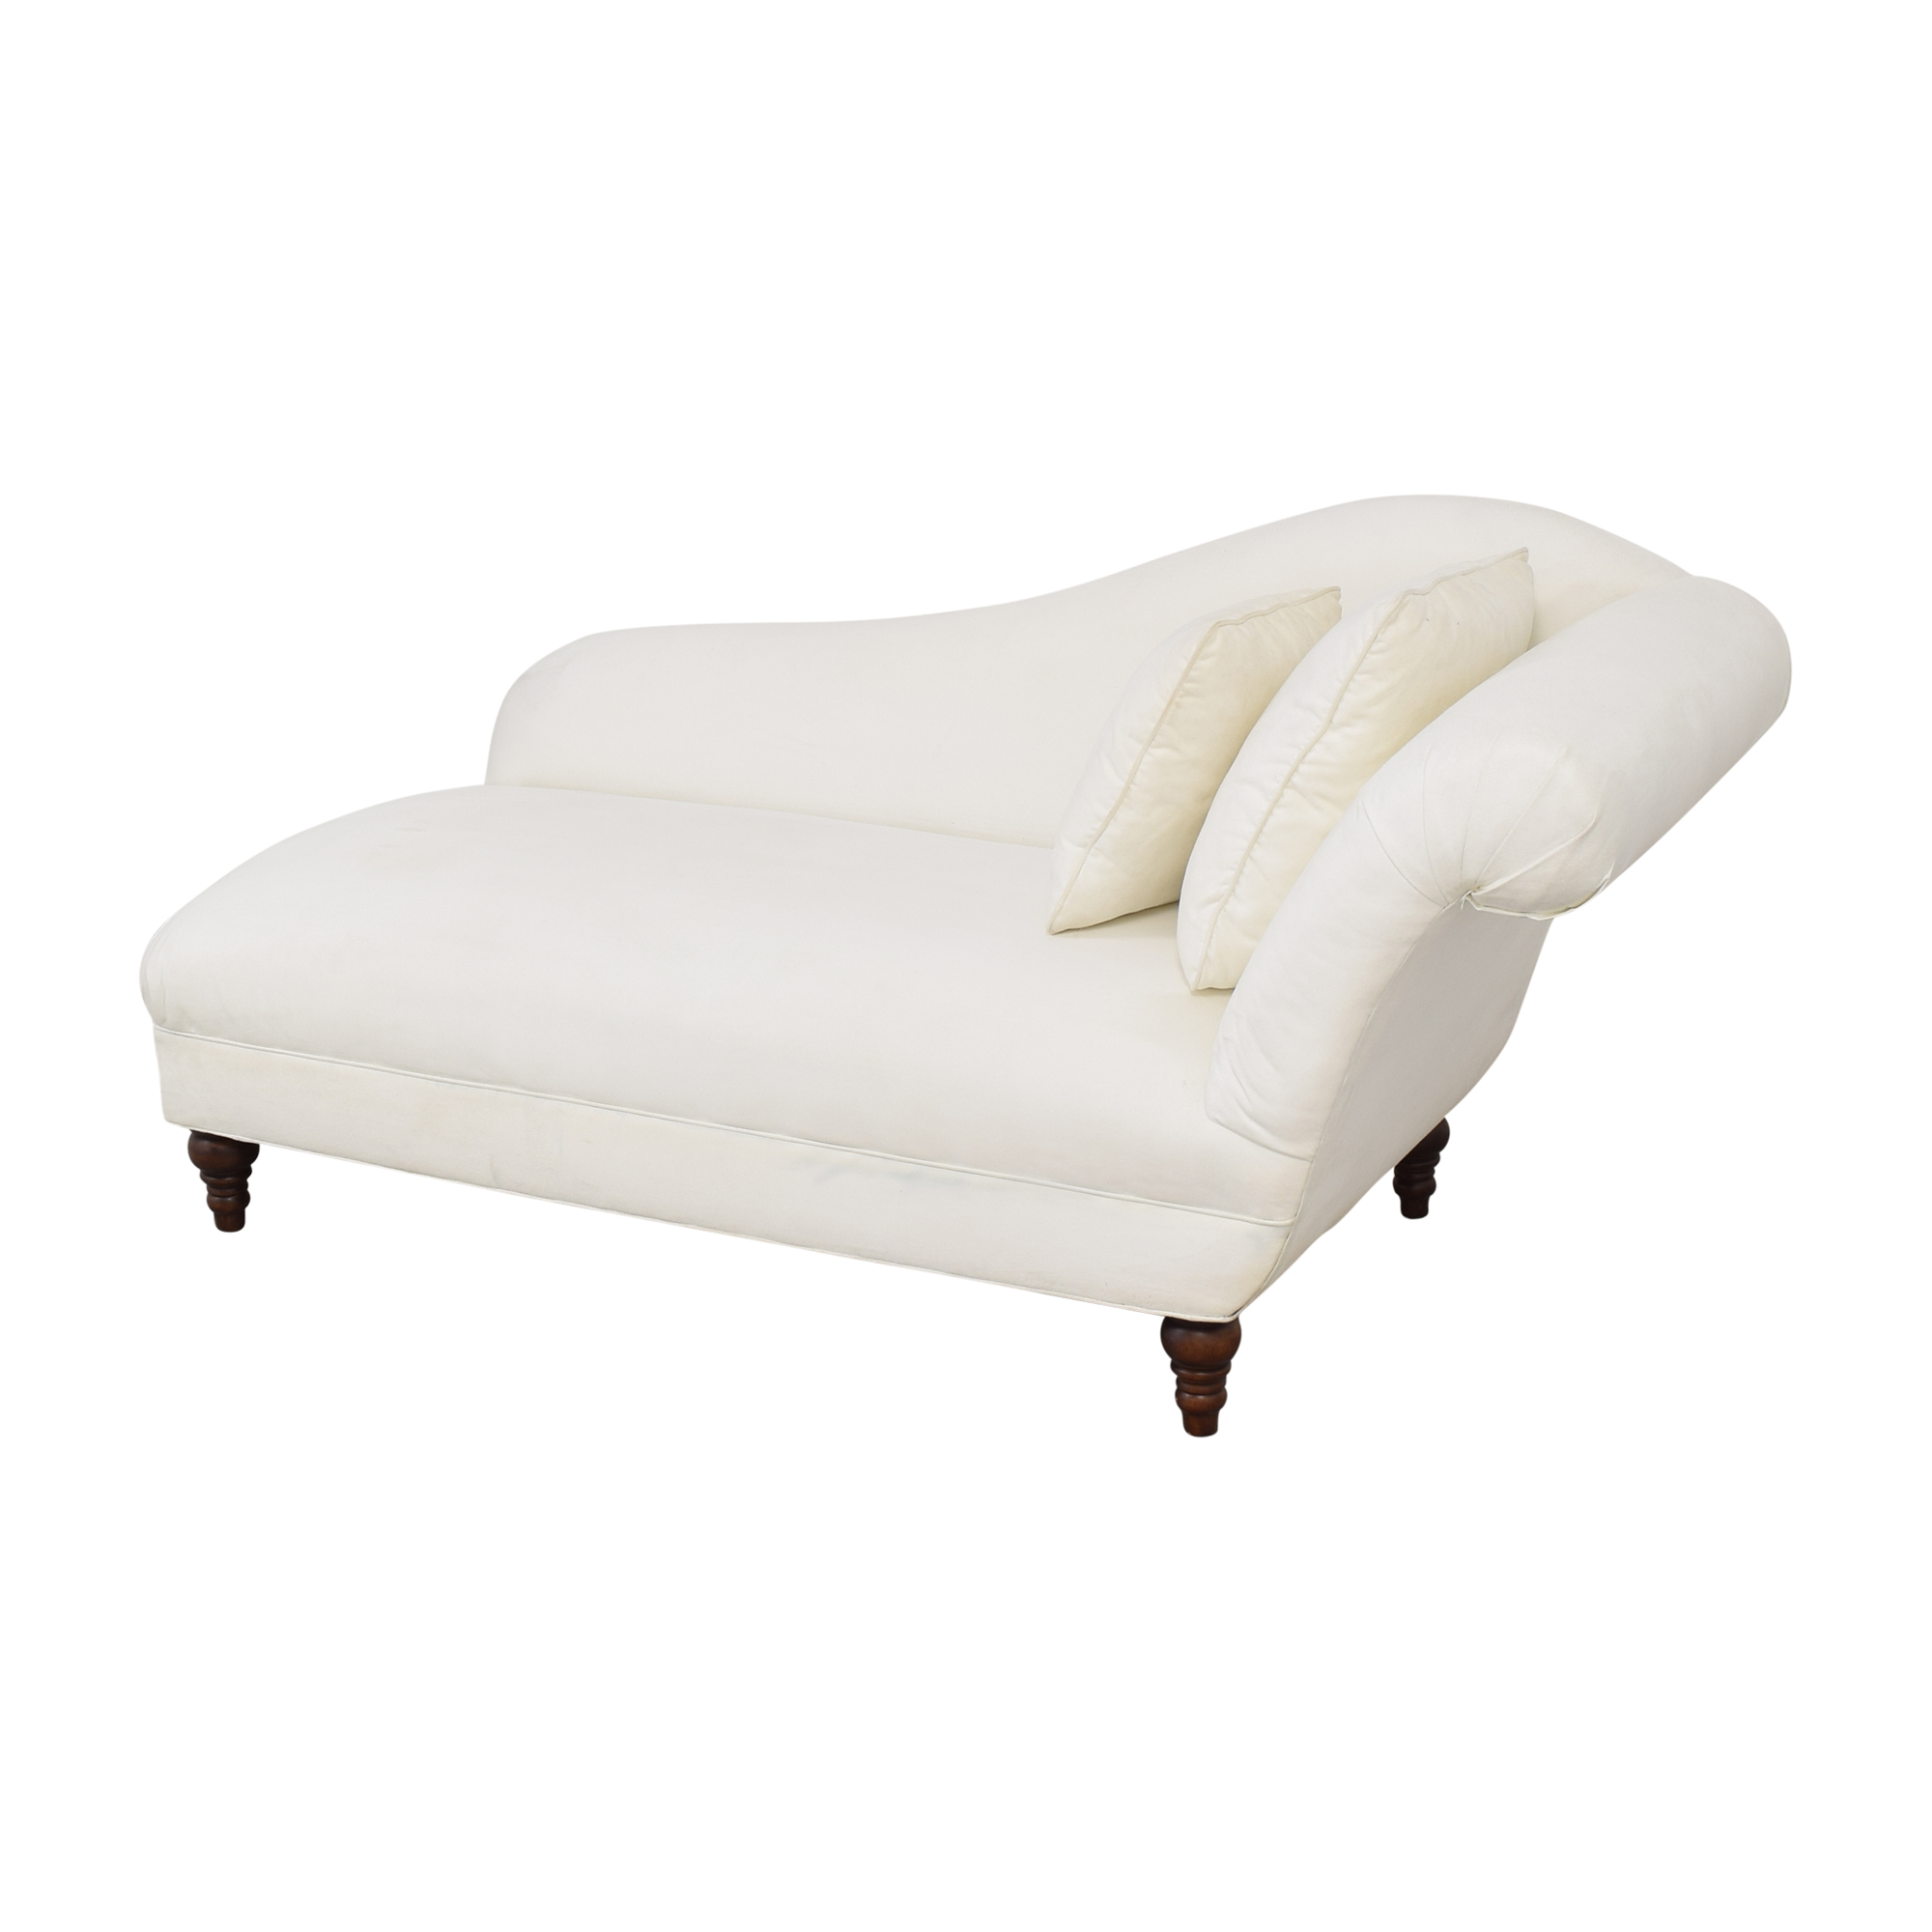 Fairfield Chair Company Fairfield Chair Company Living Room White Chaise price